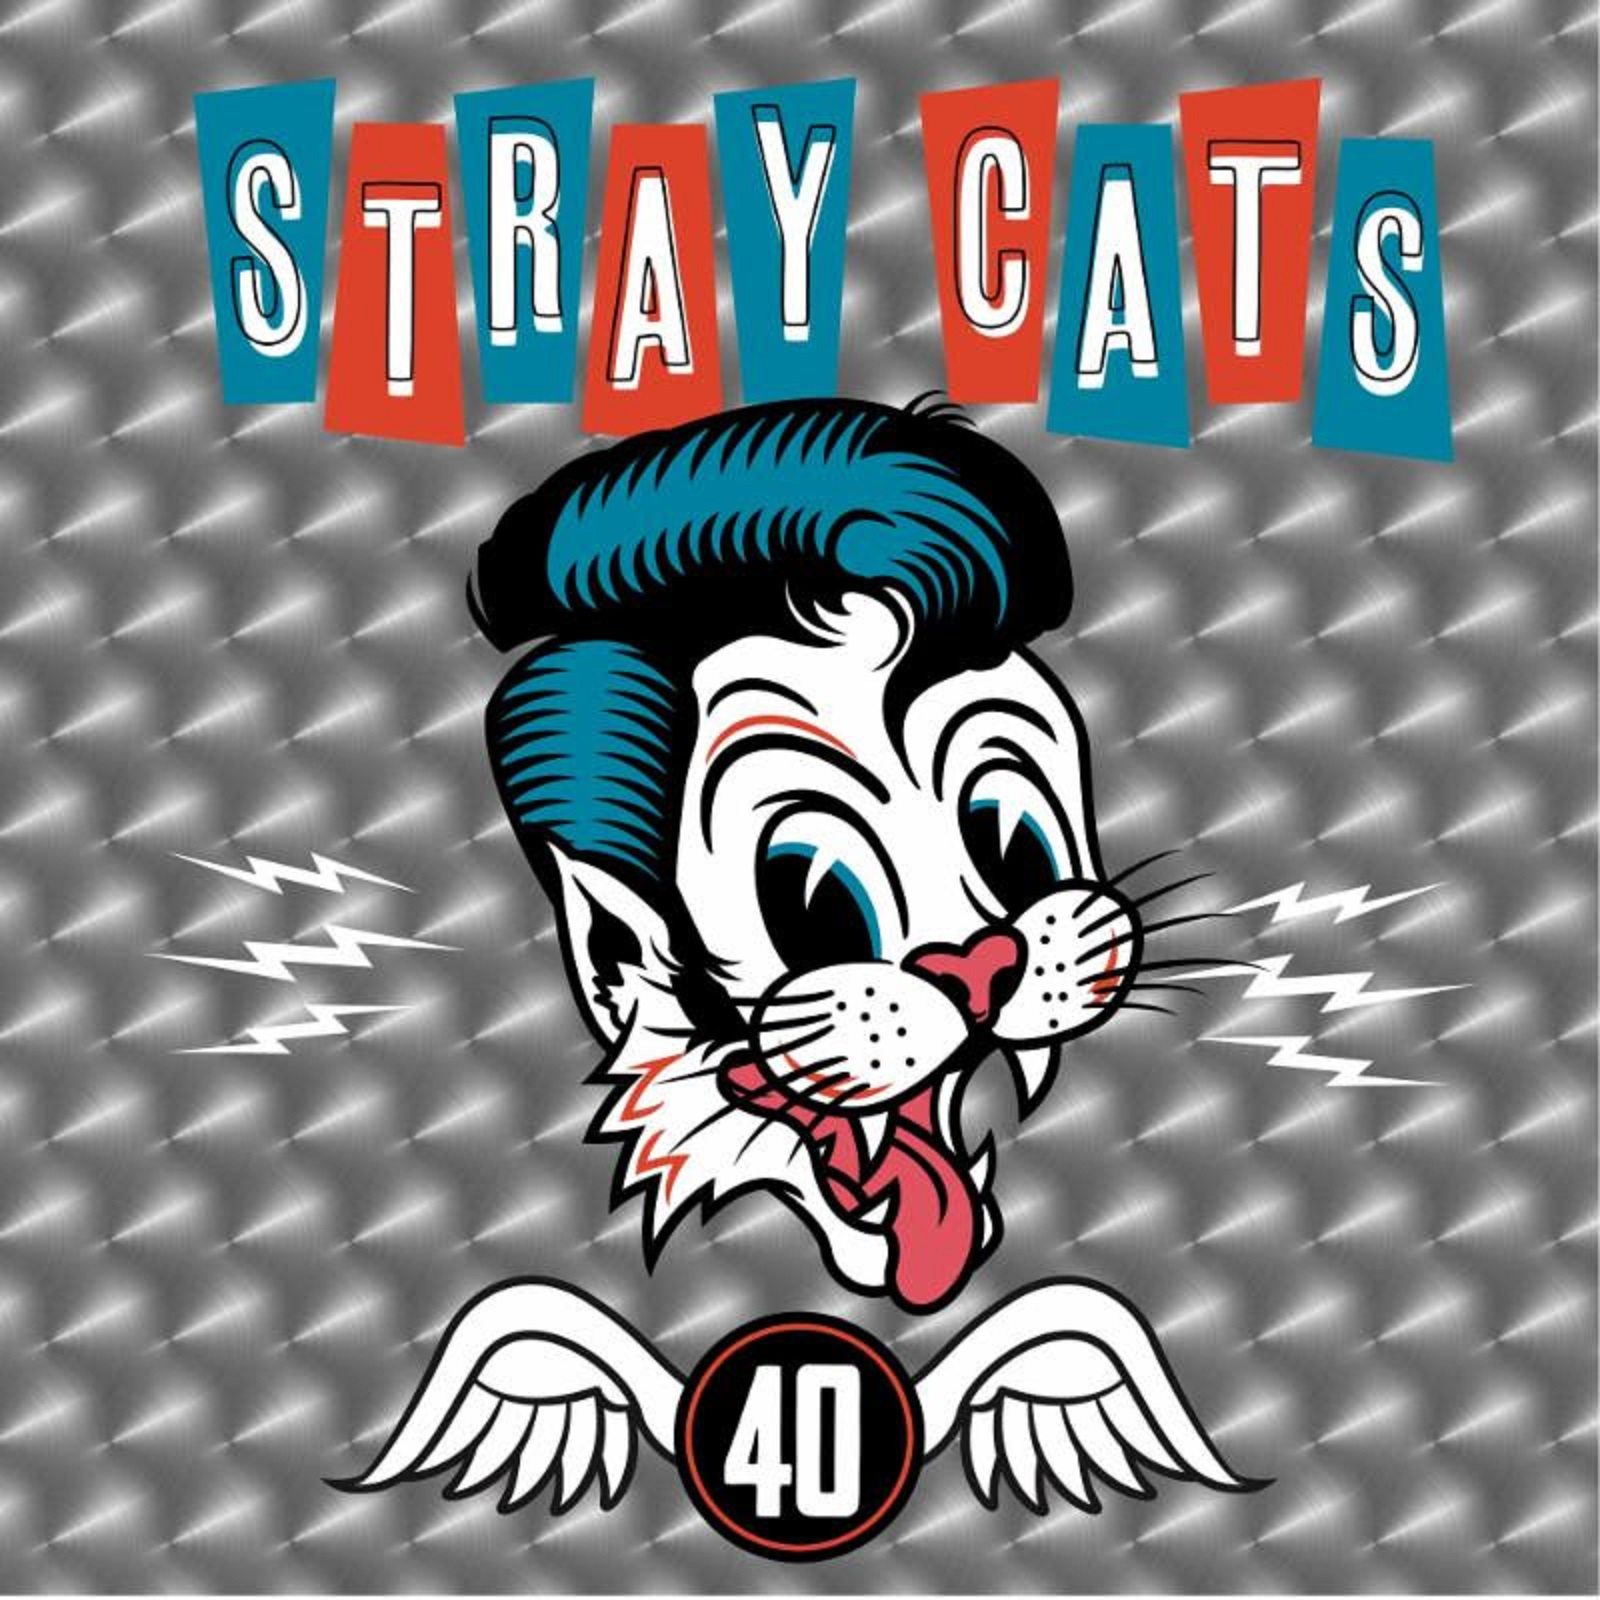 The STRAY CATS Release First New Album In 26 Years This Friday